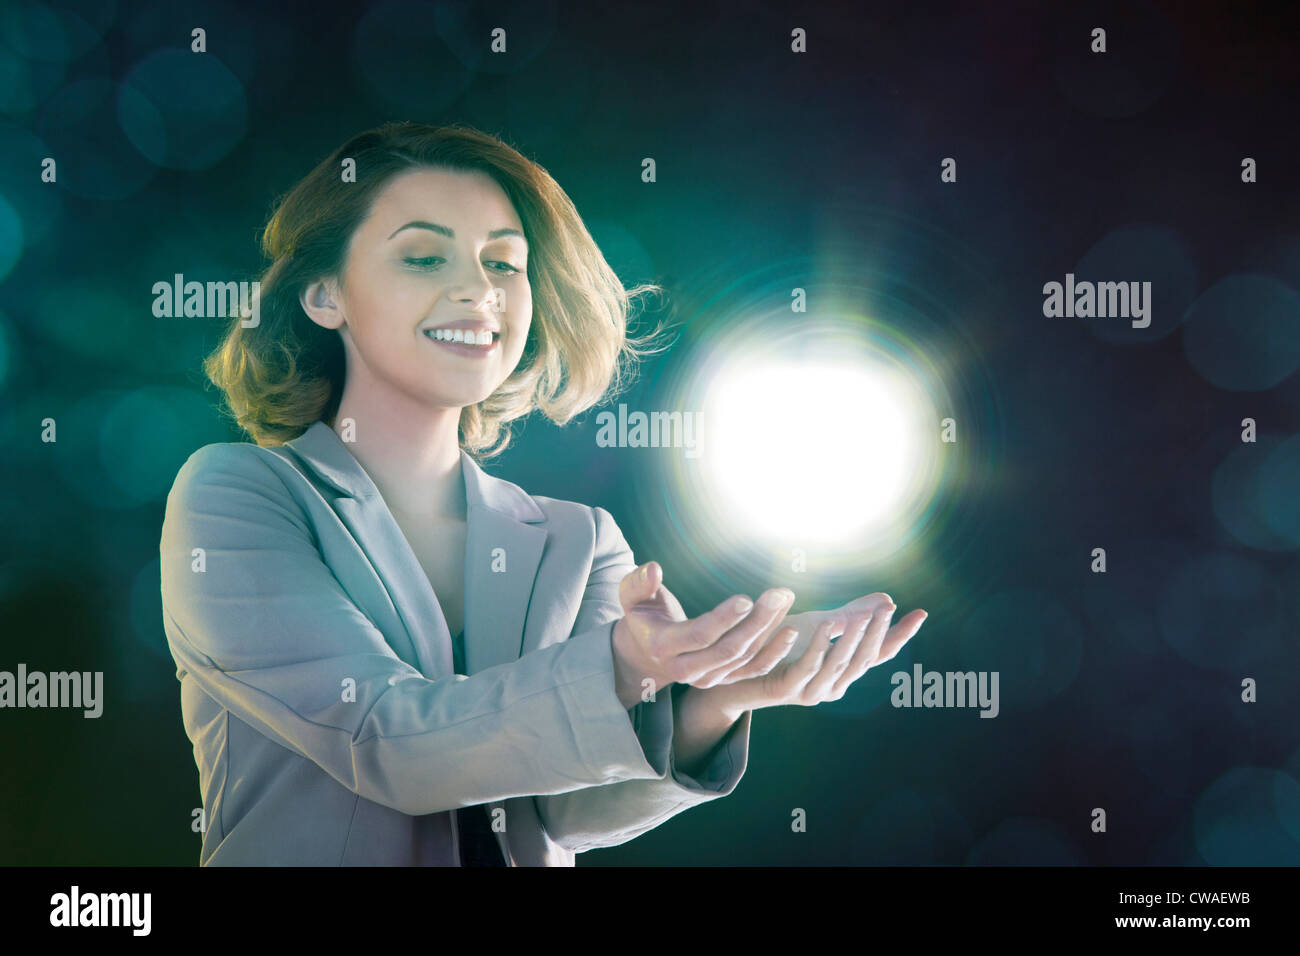 Young woman holding ball of light - Stock Image